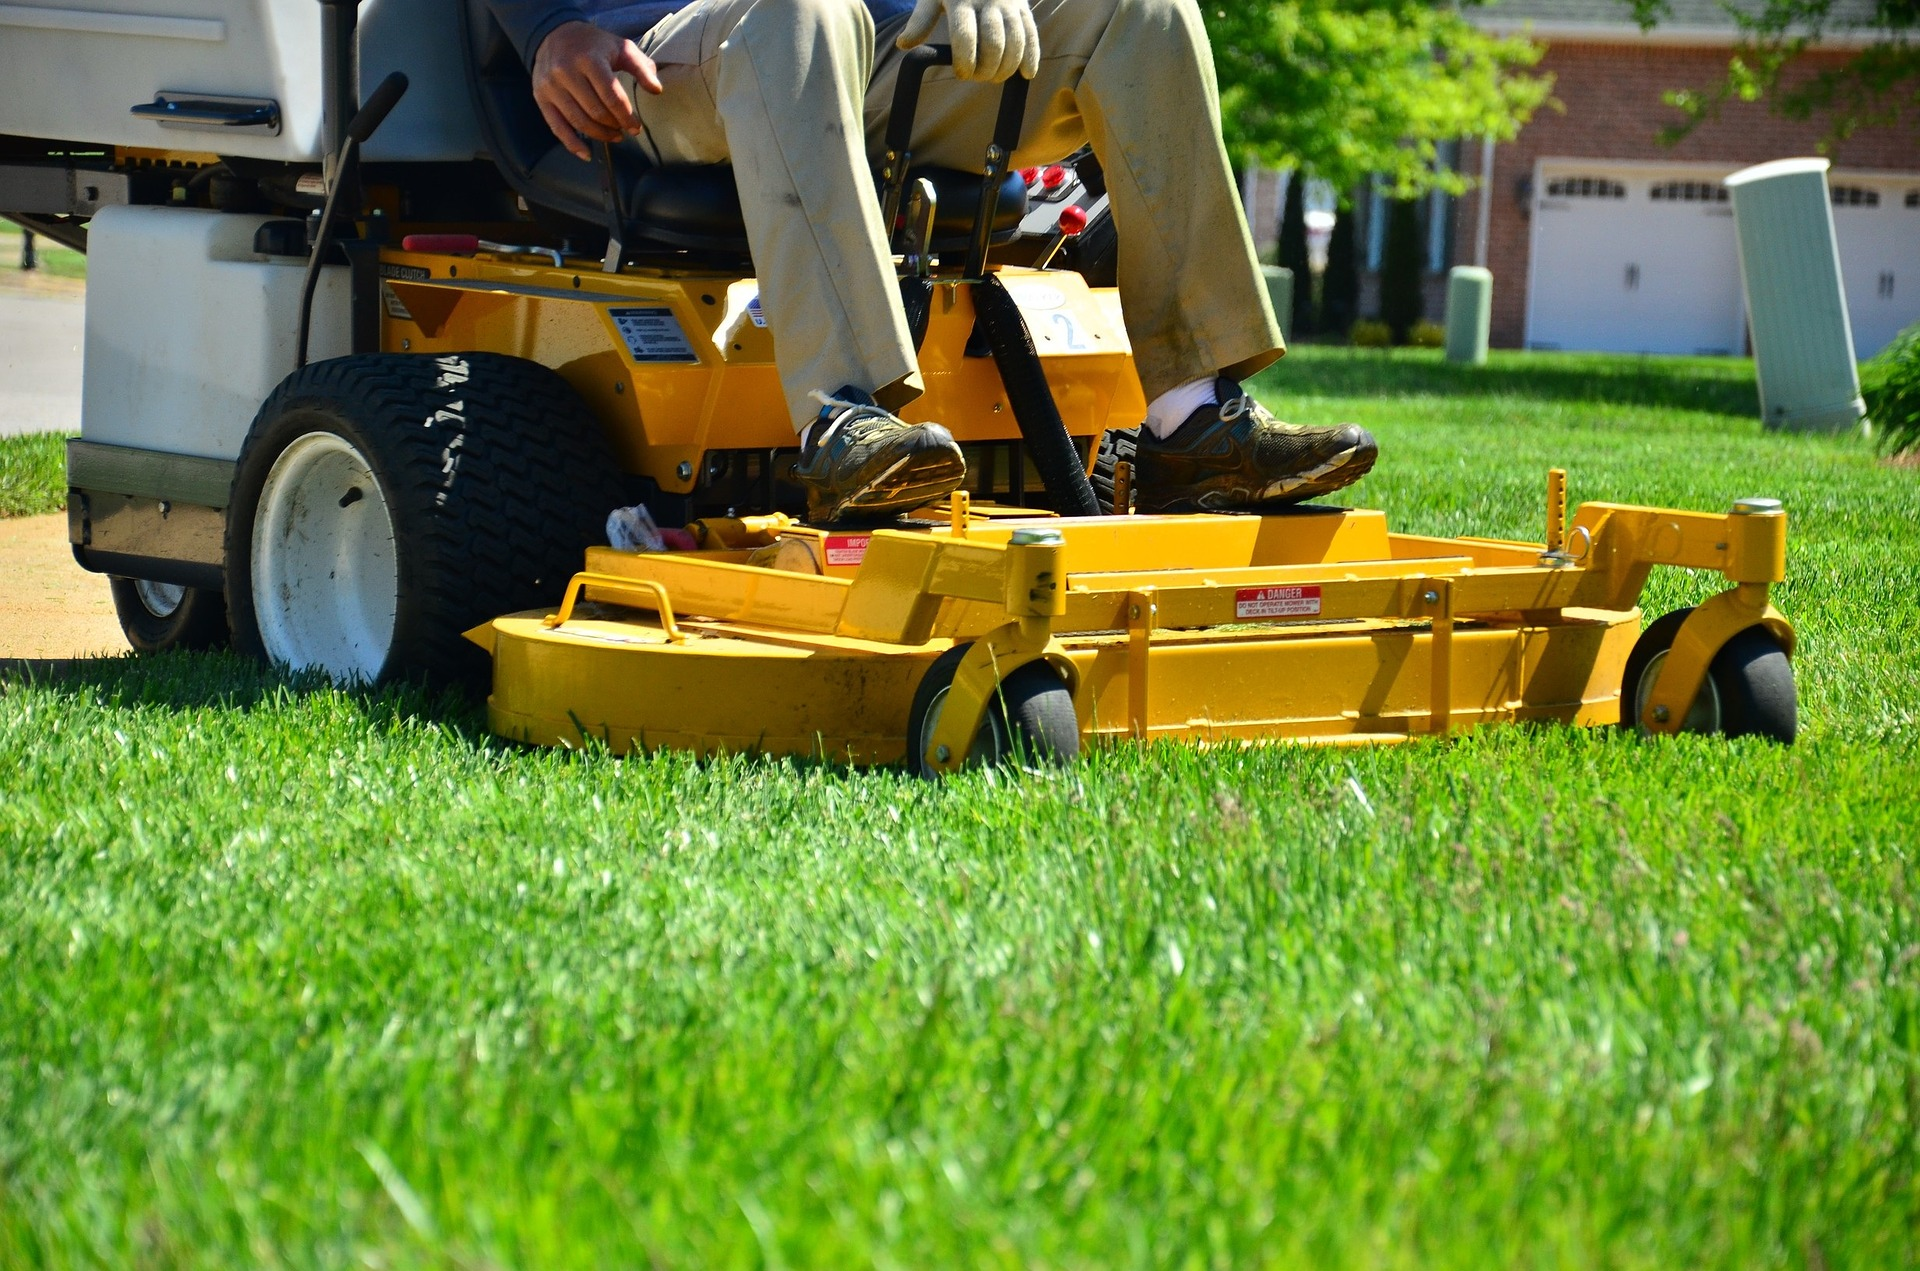 Ride-On-Mower-For-Pro-Lawn-Maintenance